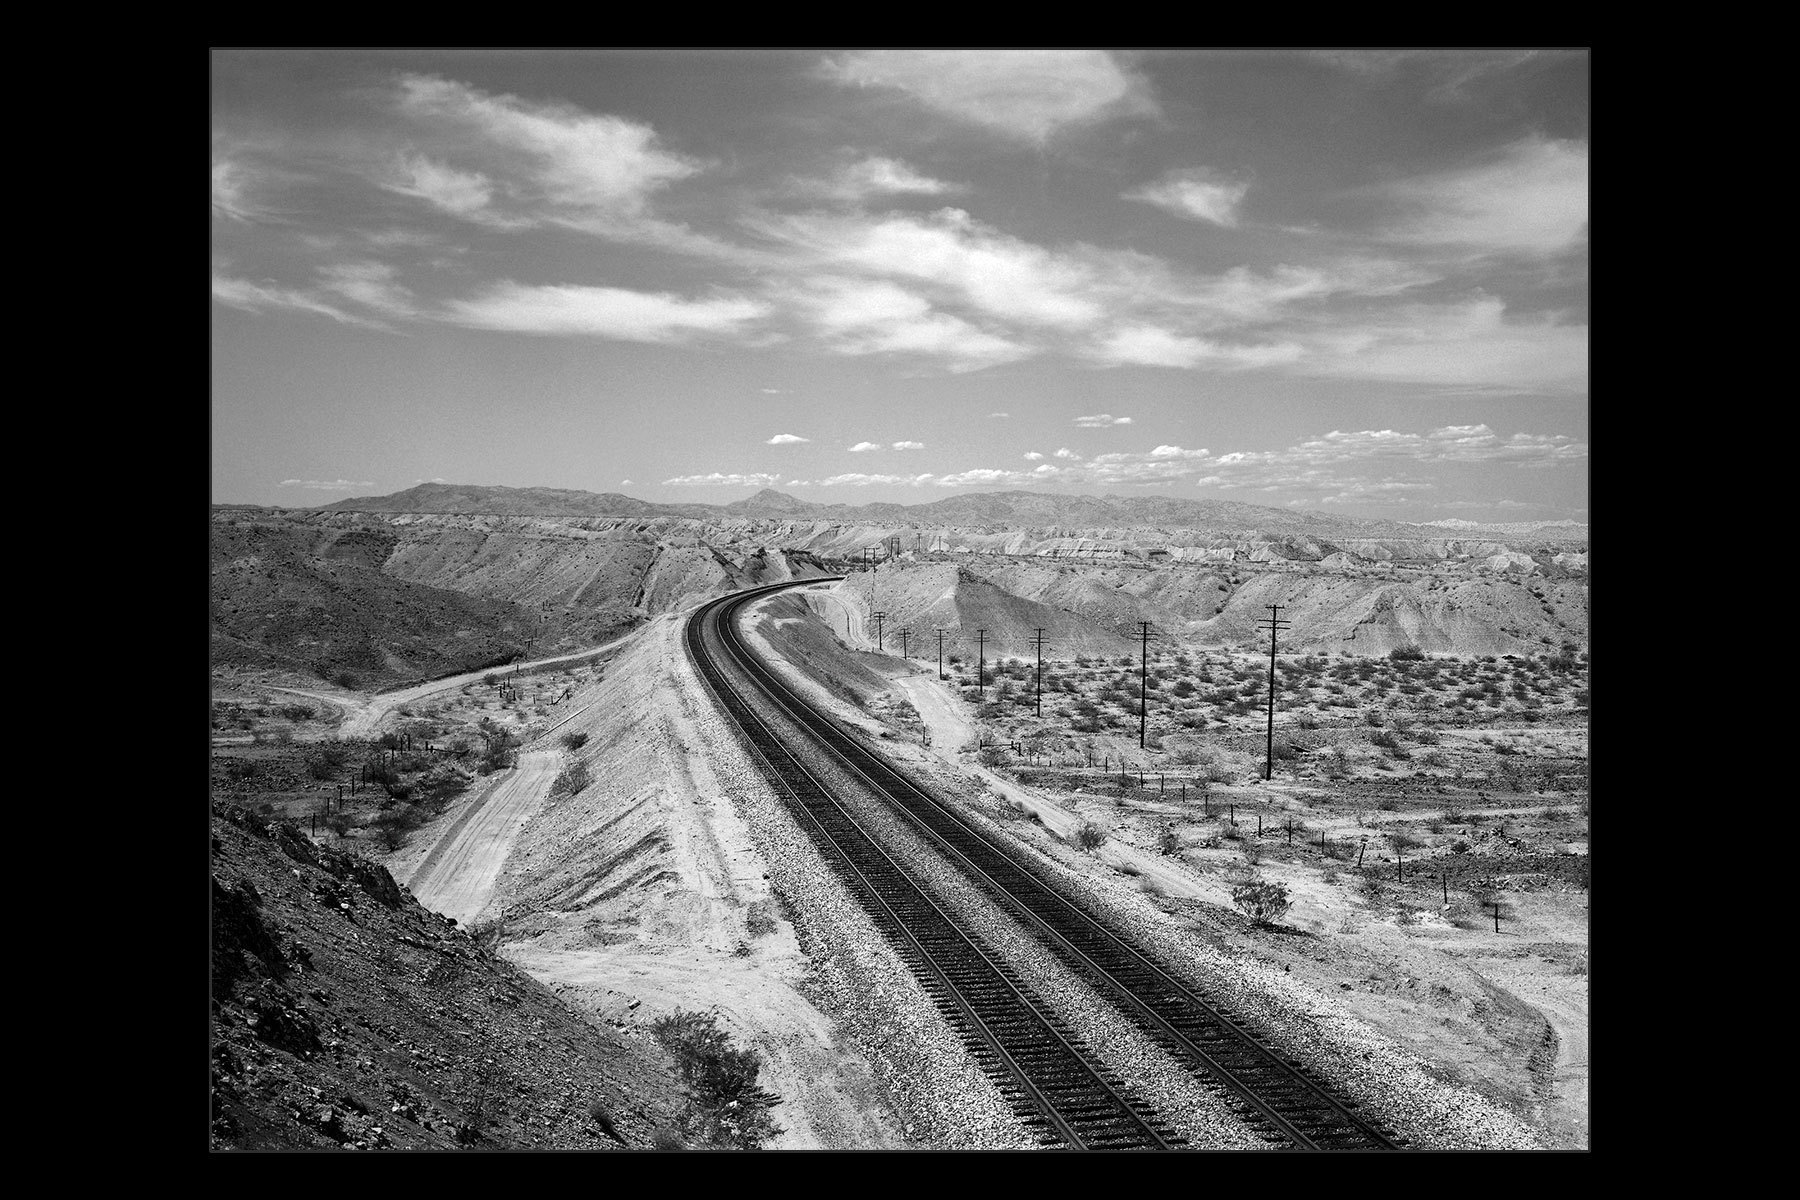 railroad tracks near Kingman, AZ